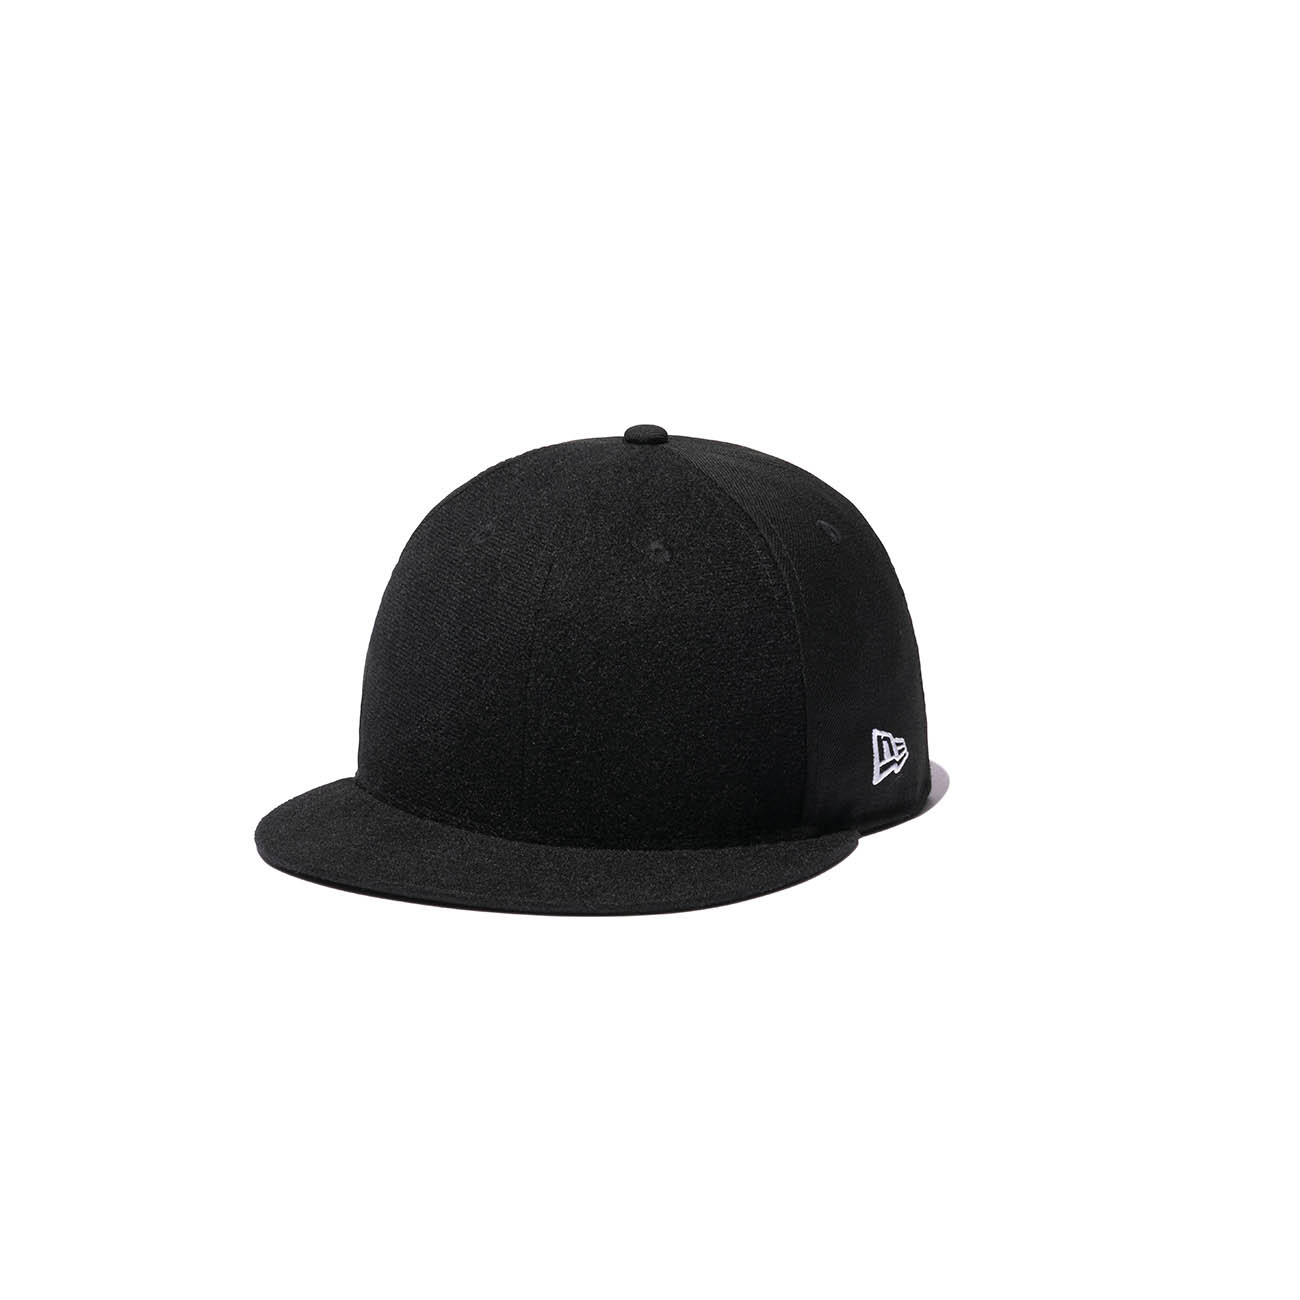 Yohji Yamamoto × New Era 59FIFTY BLACK SERGE VELCRO PATCH 100TH